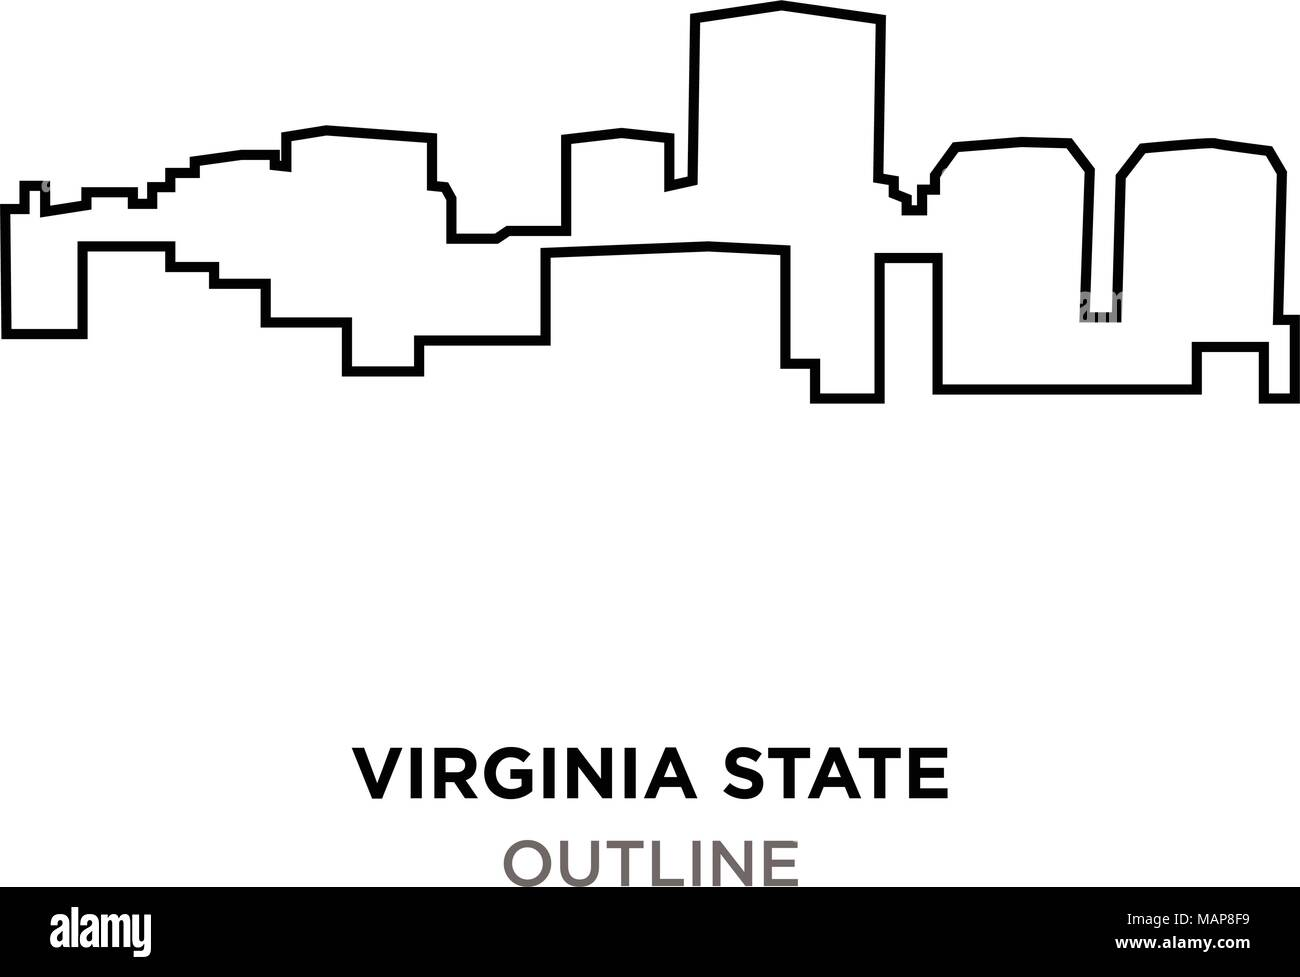 virginia state outline on white background stock vector art